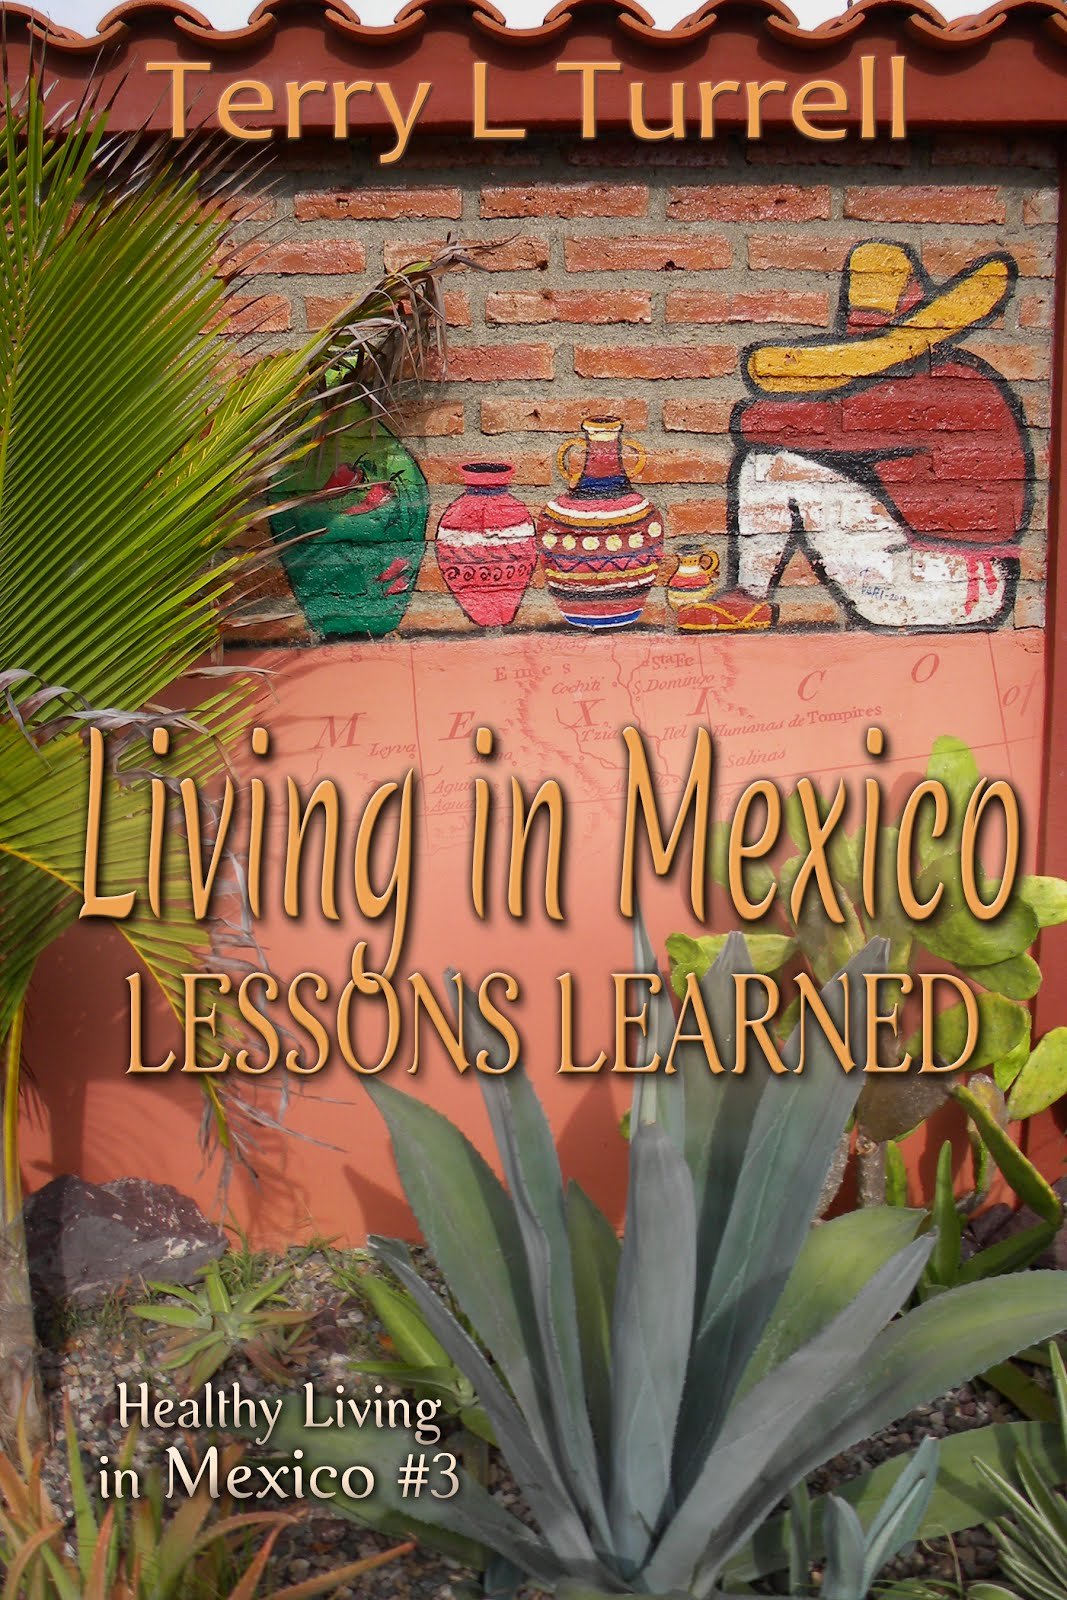 Healthy Living in Mexico eBook #3